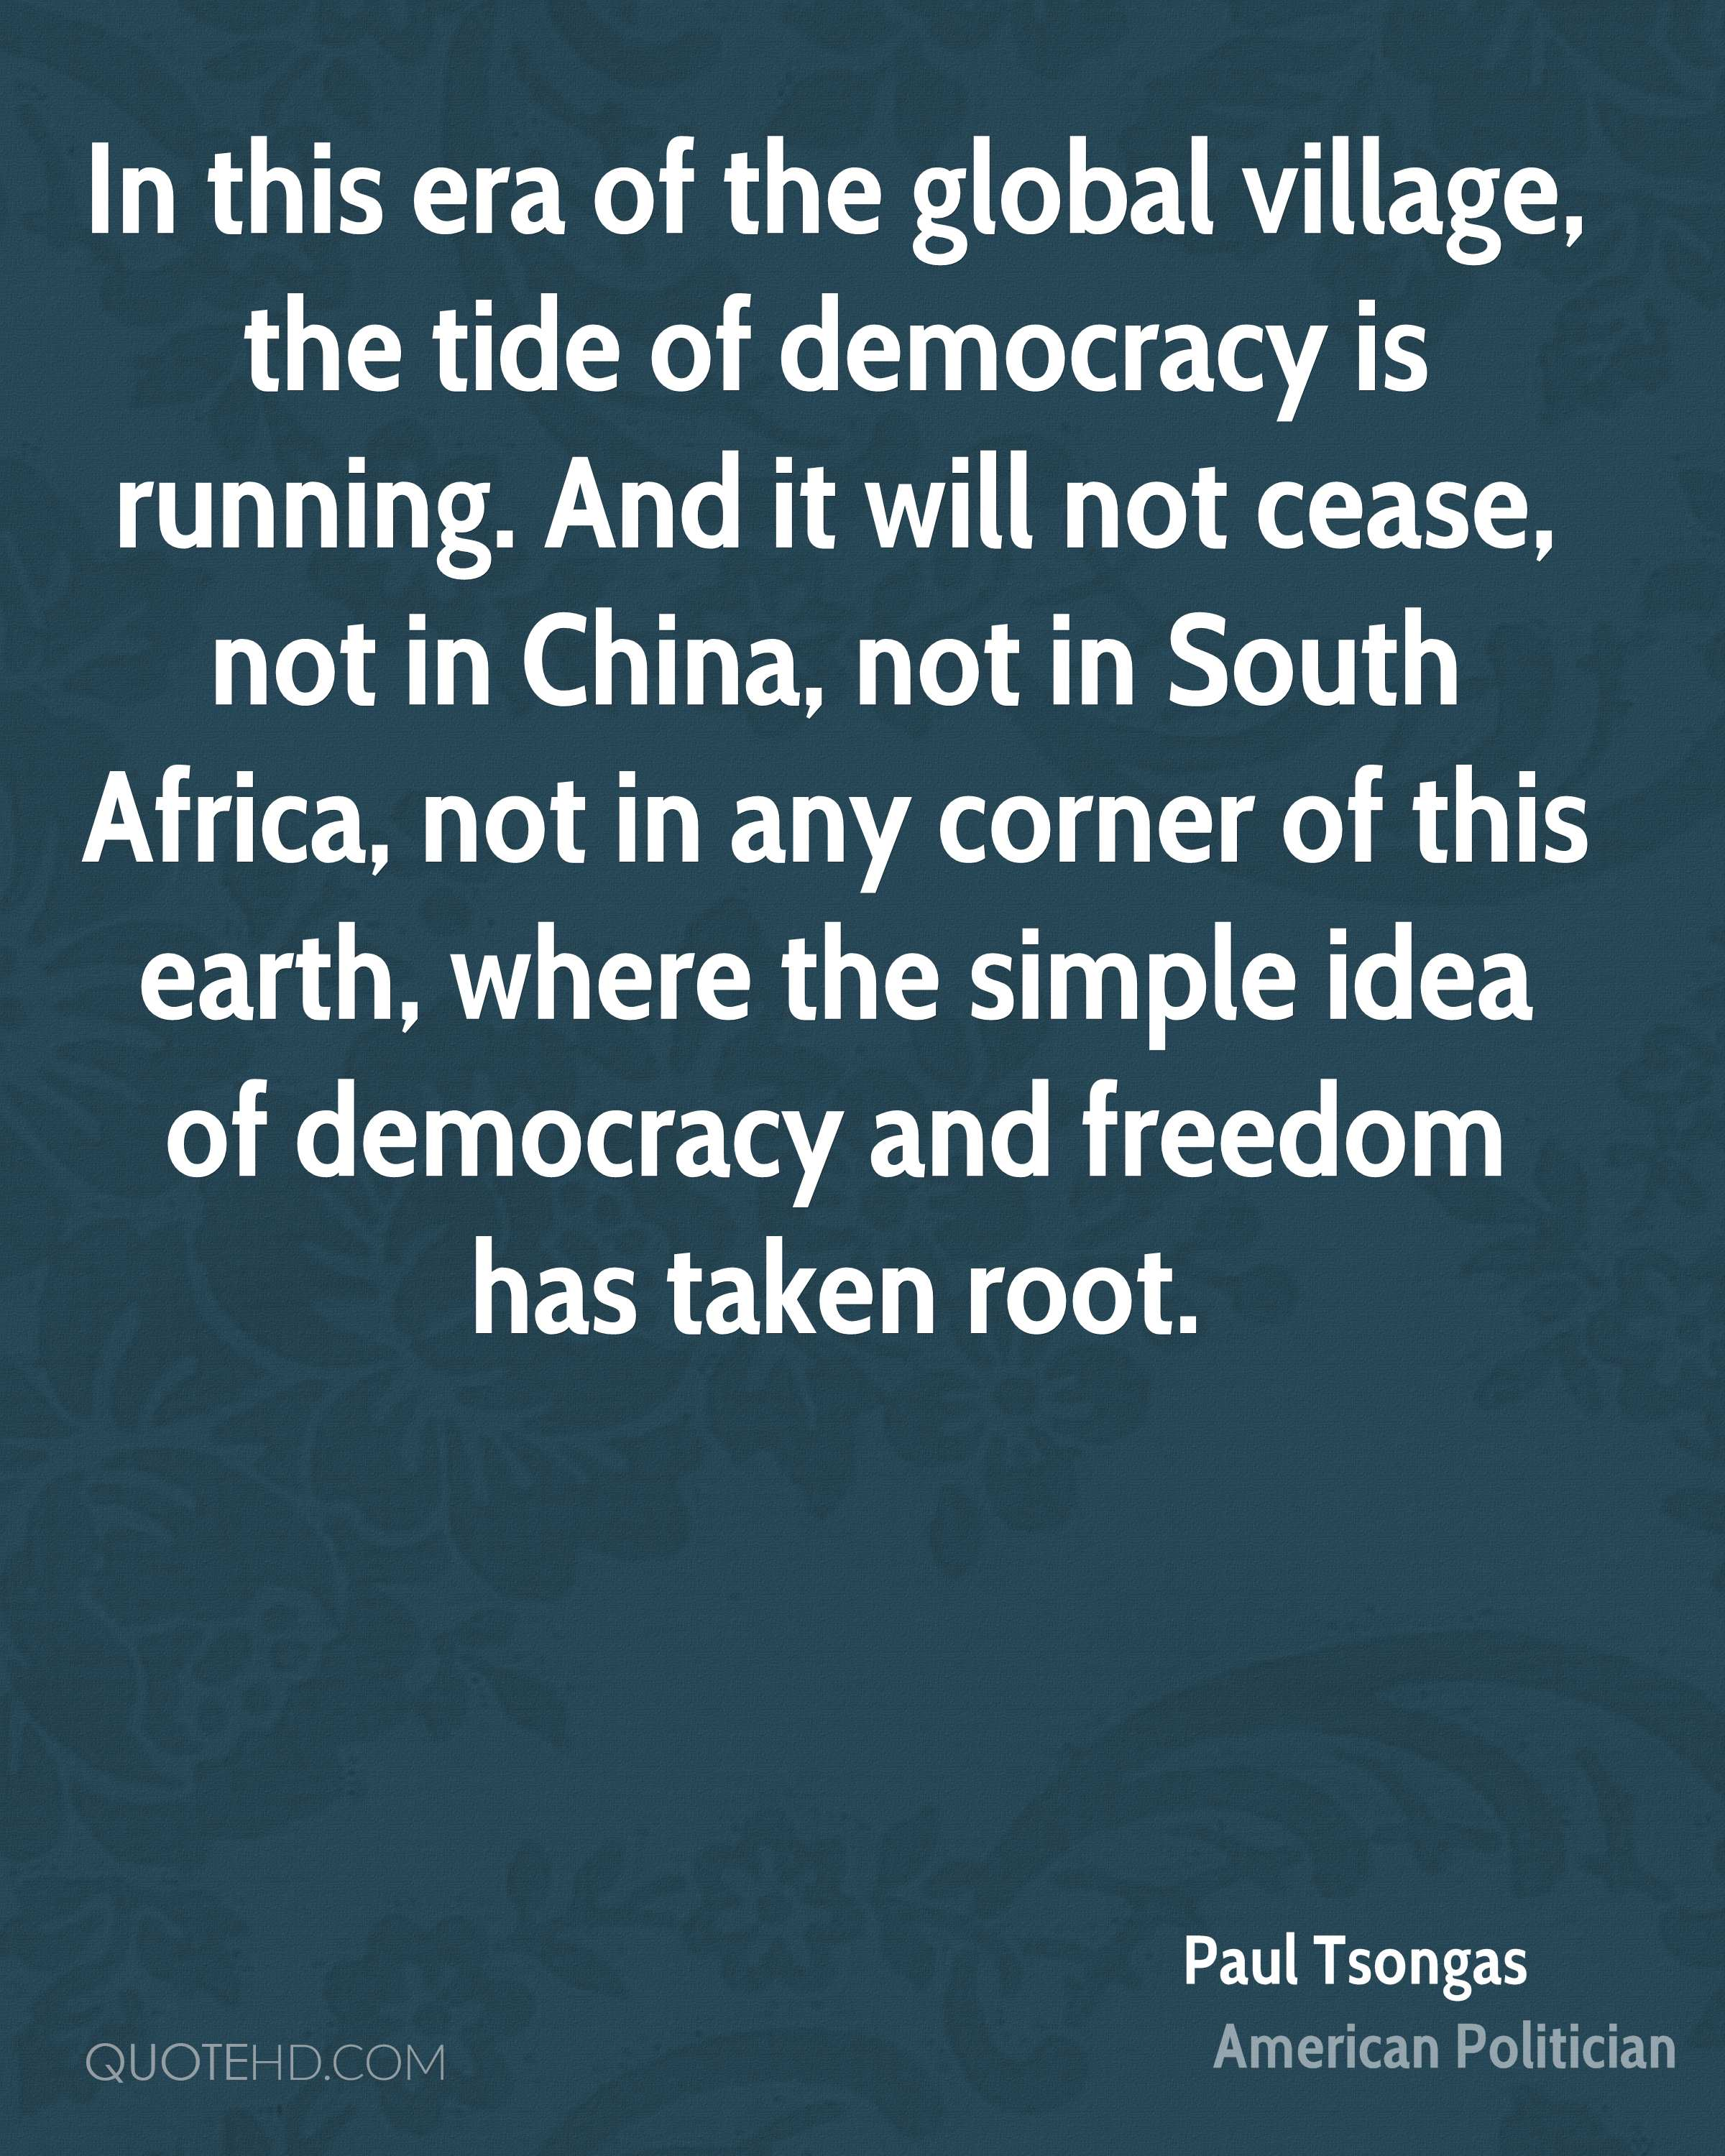 In this era of the global village, the tide of democracy is running. And it will not cease, not in China, not in South Africa, not in any corner of this earth, where the simple idea of democracy and freedom has taken root.